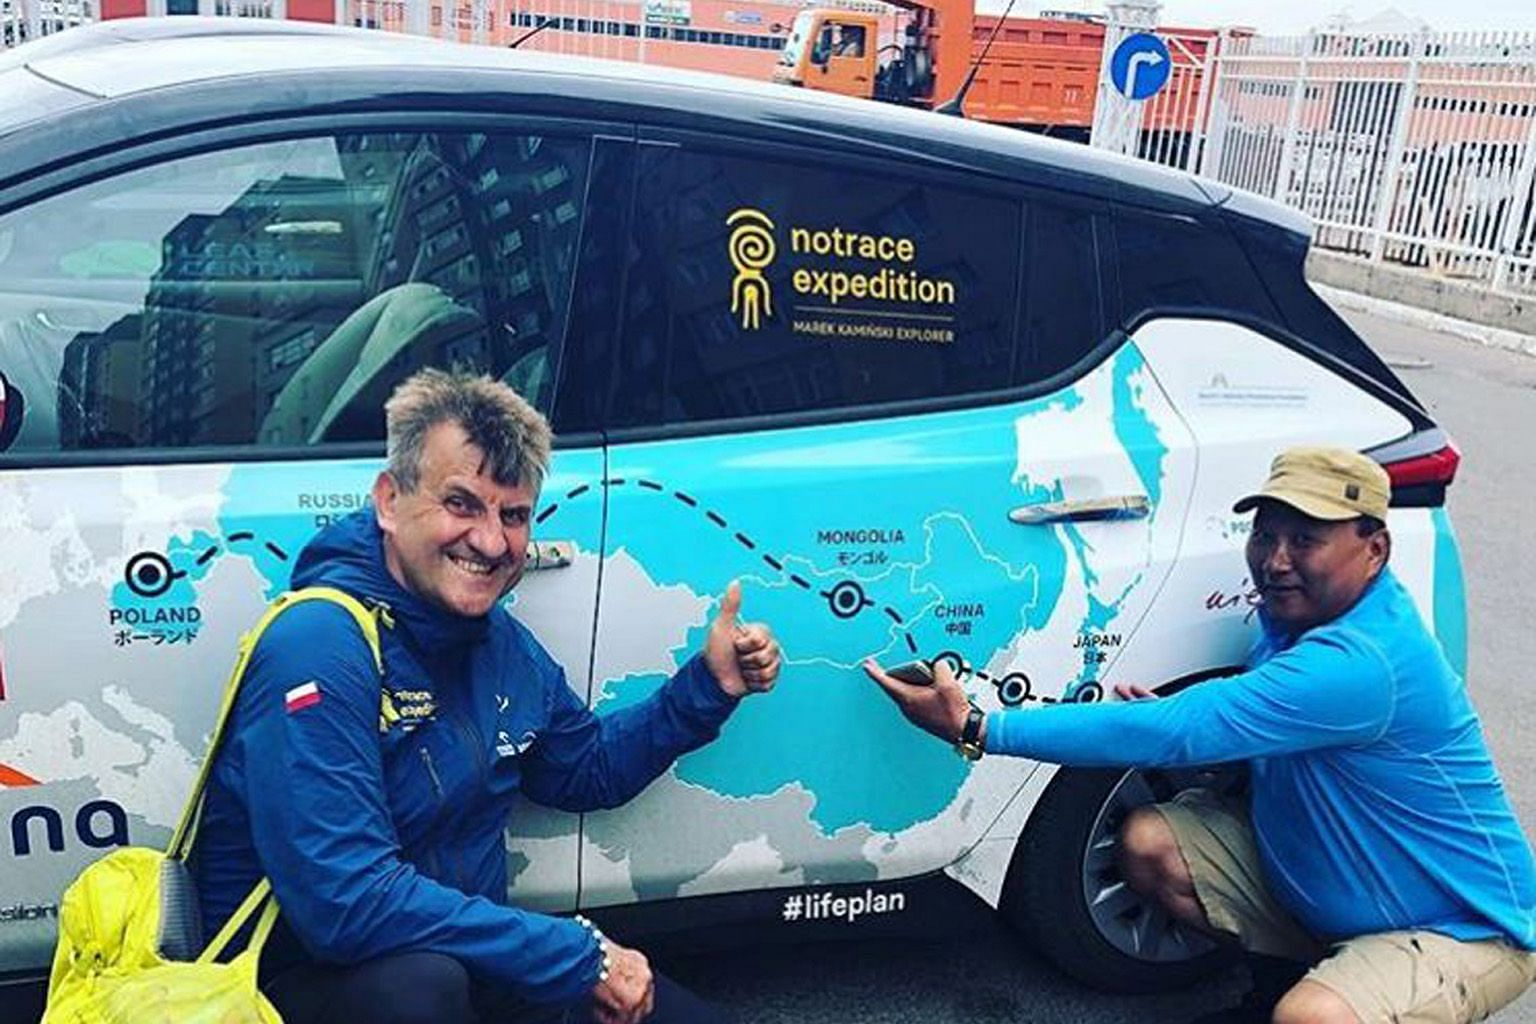 Mr Marek Kaminski with the Nissan Leaf vehicle he has been travelling in and a Mongolian he met during his drive. His stop in Japan marked the halfway point of his 32,000km No Trace Expedition.